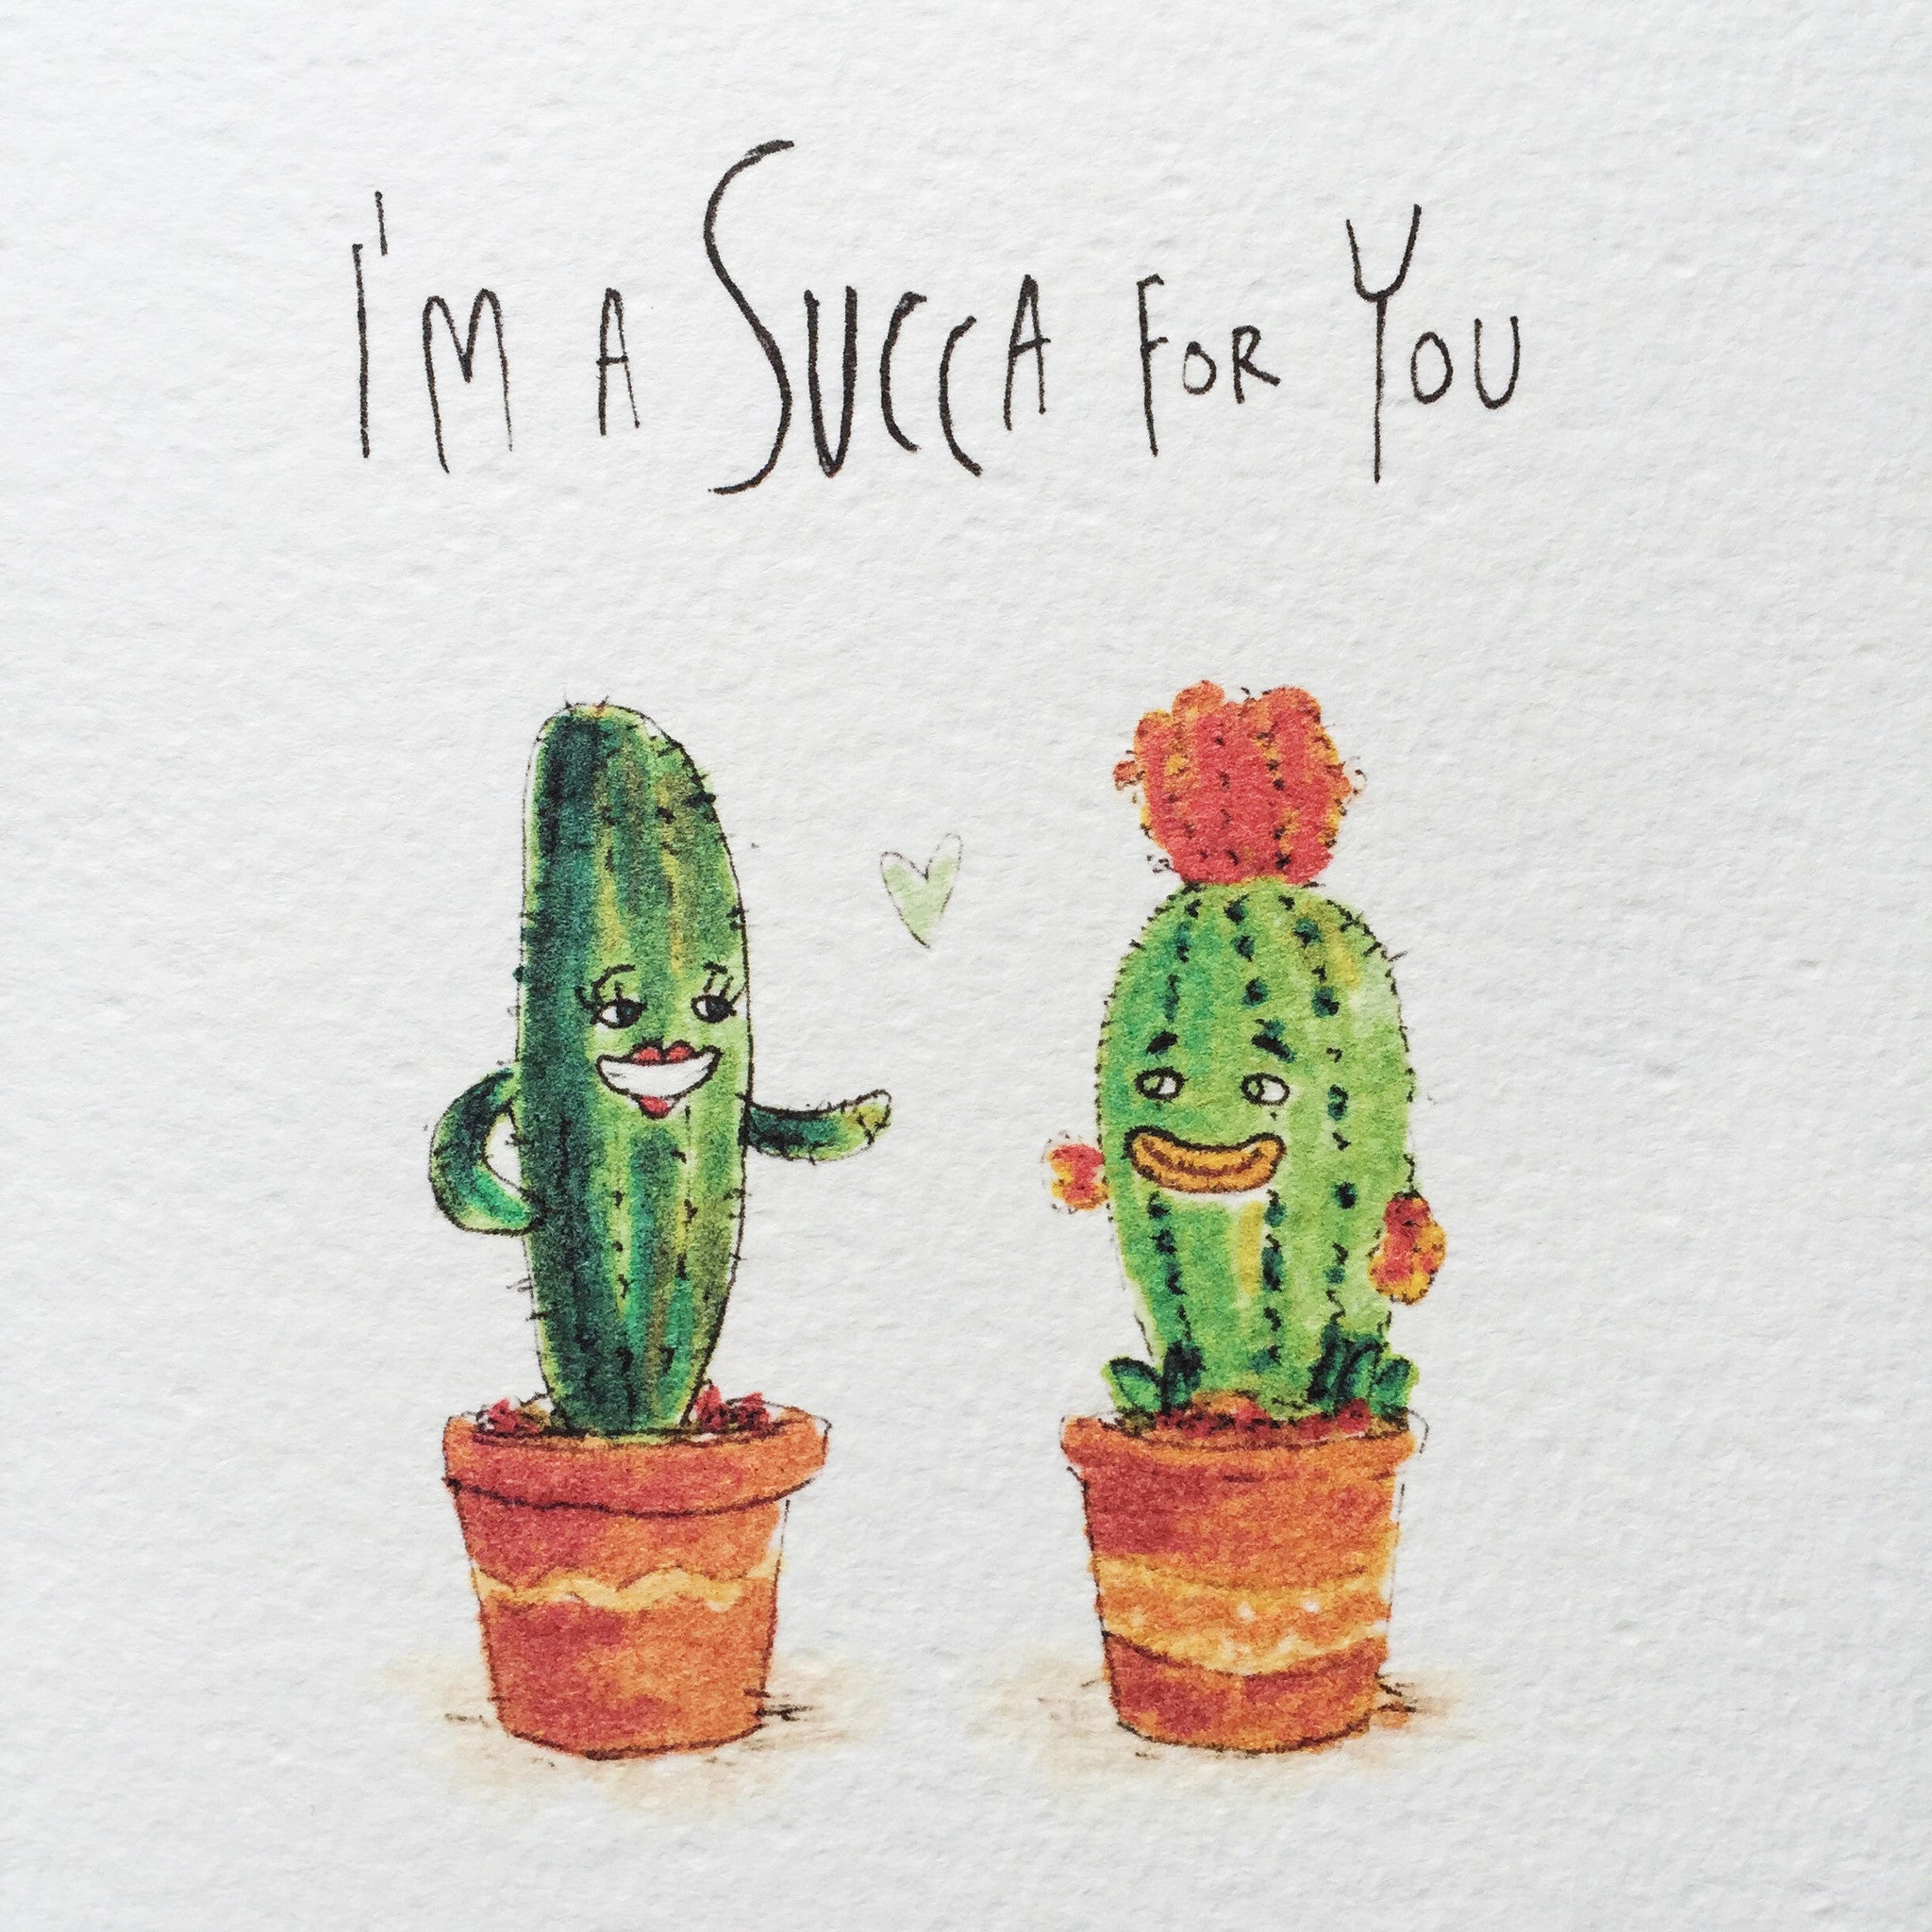 I'm a Succa For You - Well Drawn